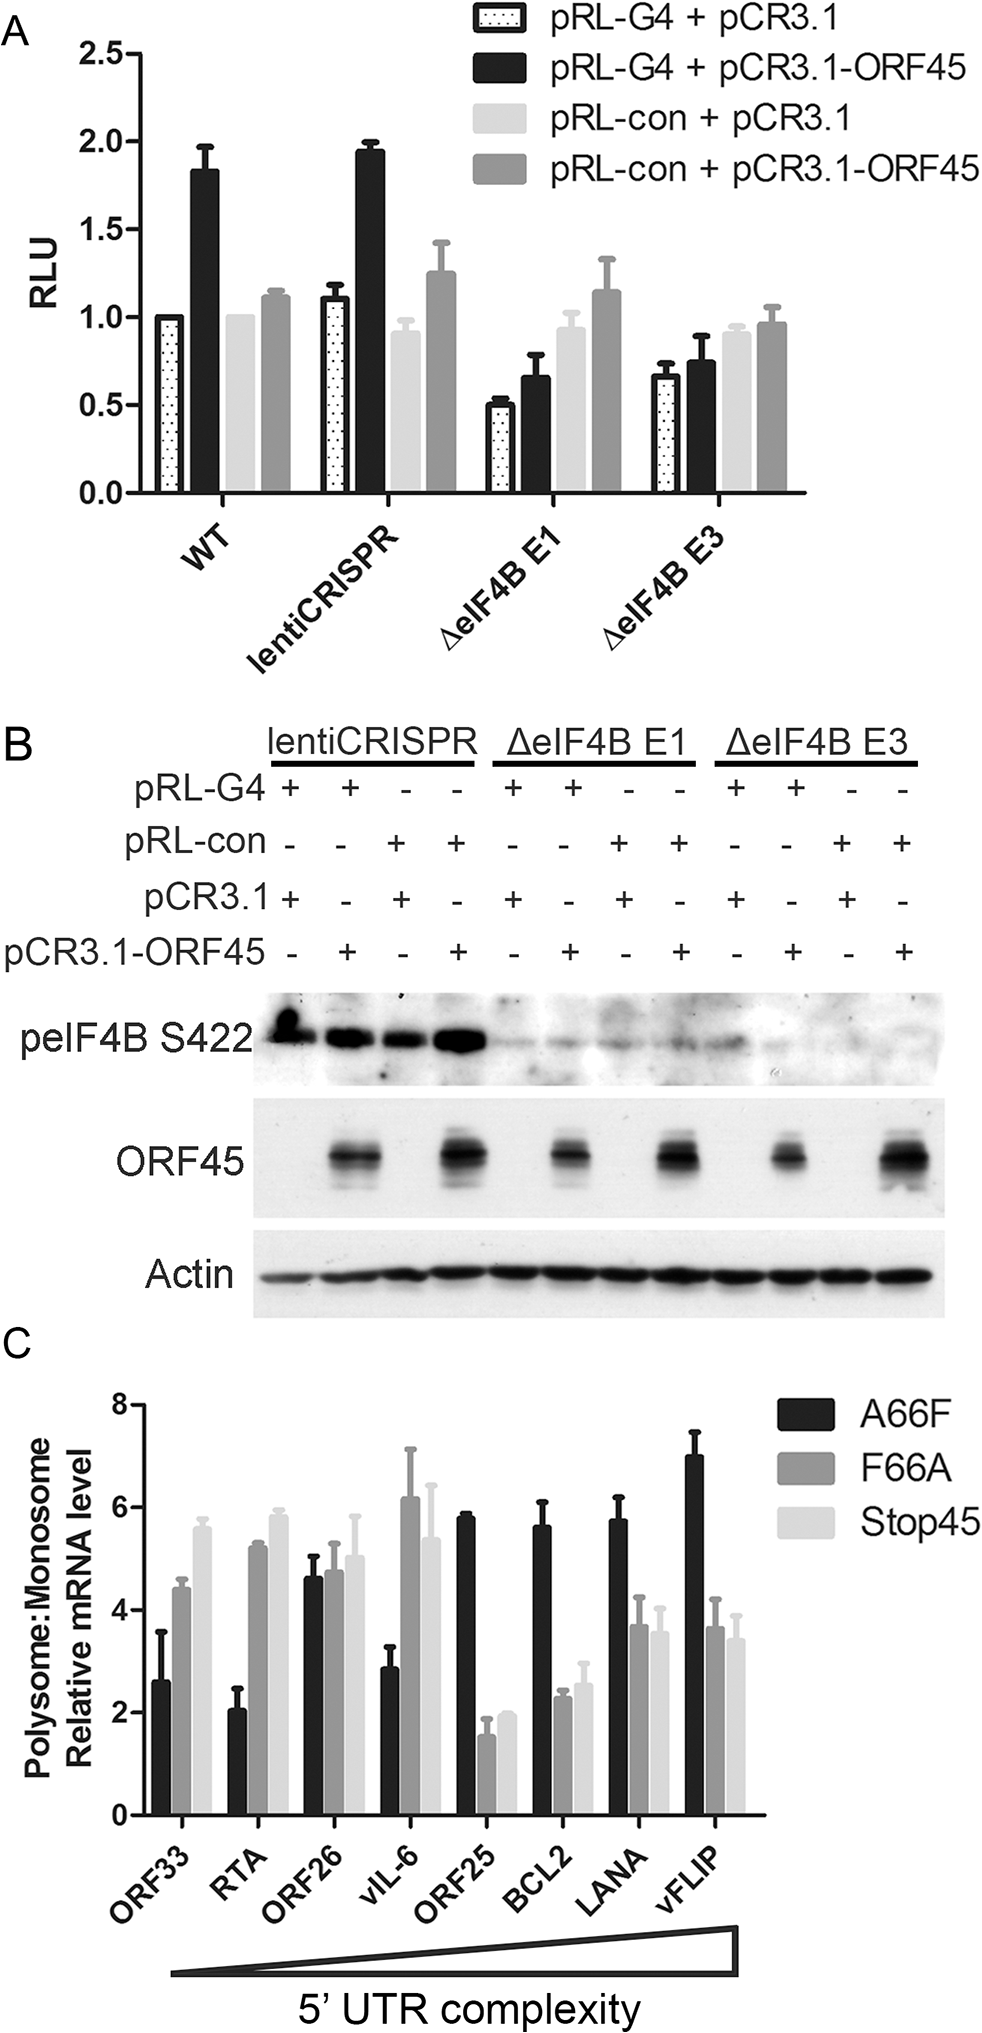 ORF45/eIF4B-dependent translational control of mRNAs with complex 5' UTR structure.